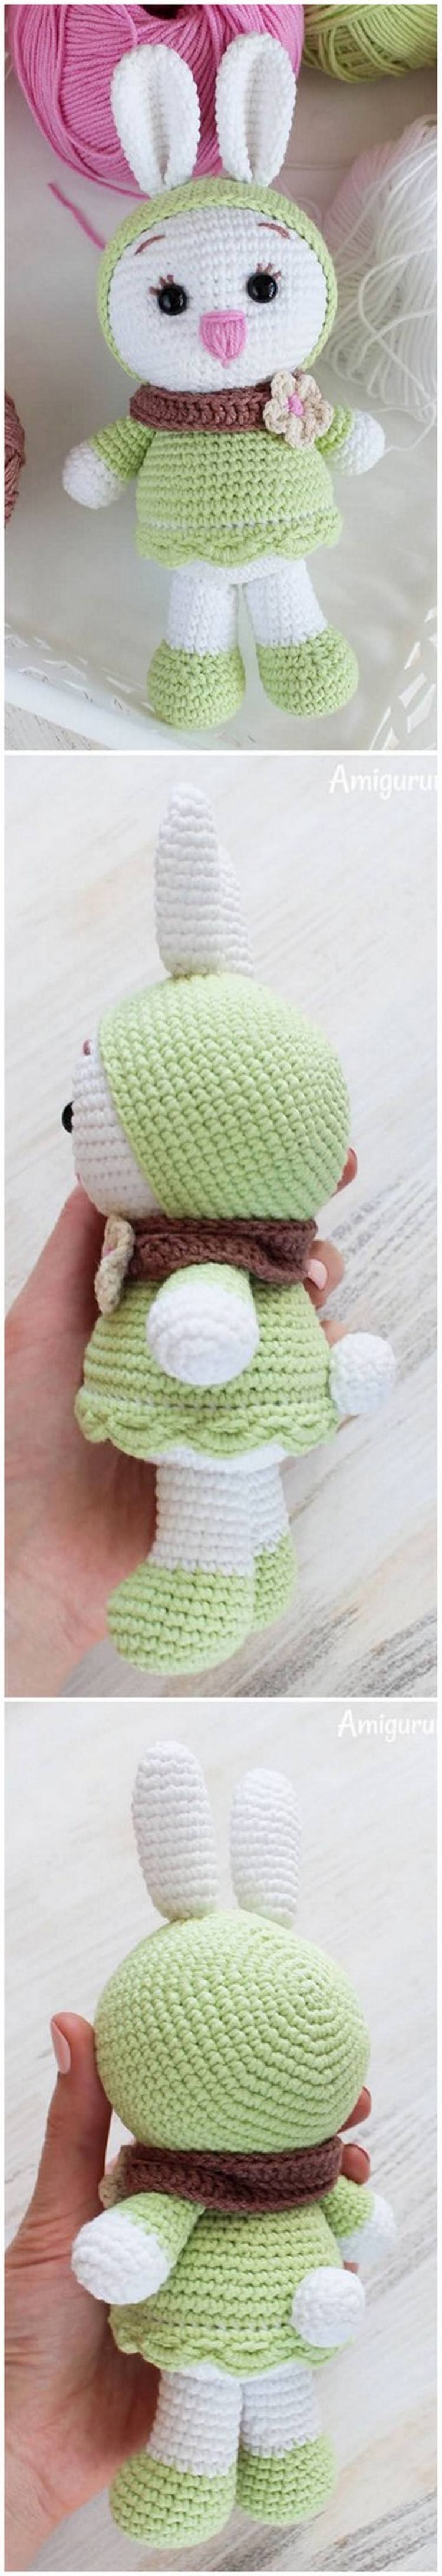 Quick and Easy Free Crochet Pattern (26)